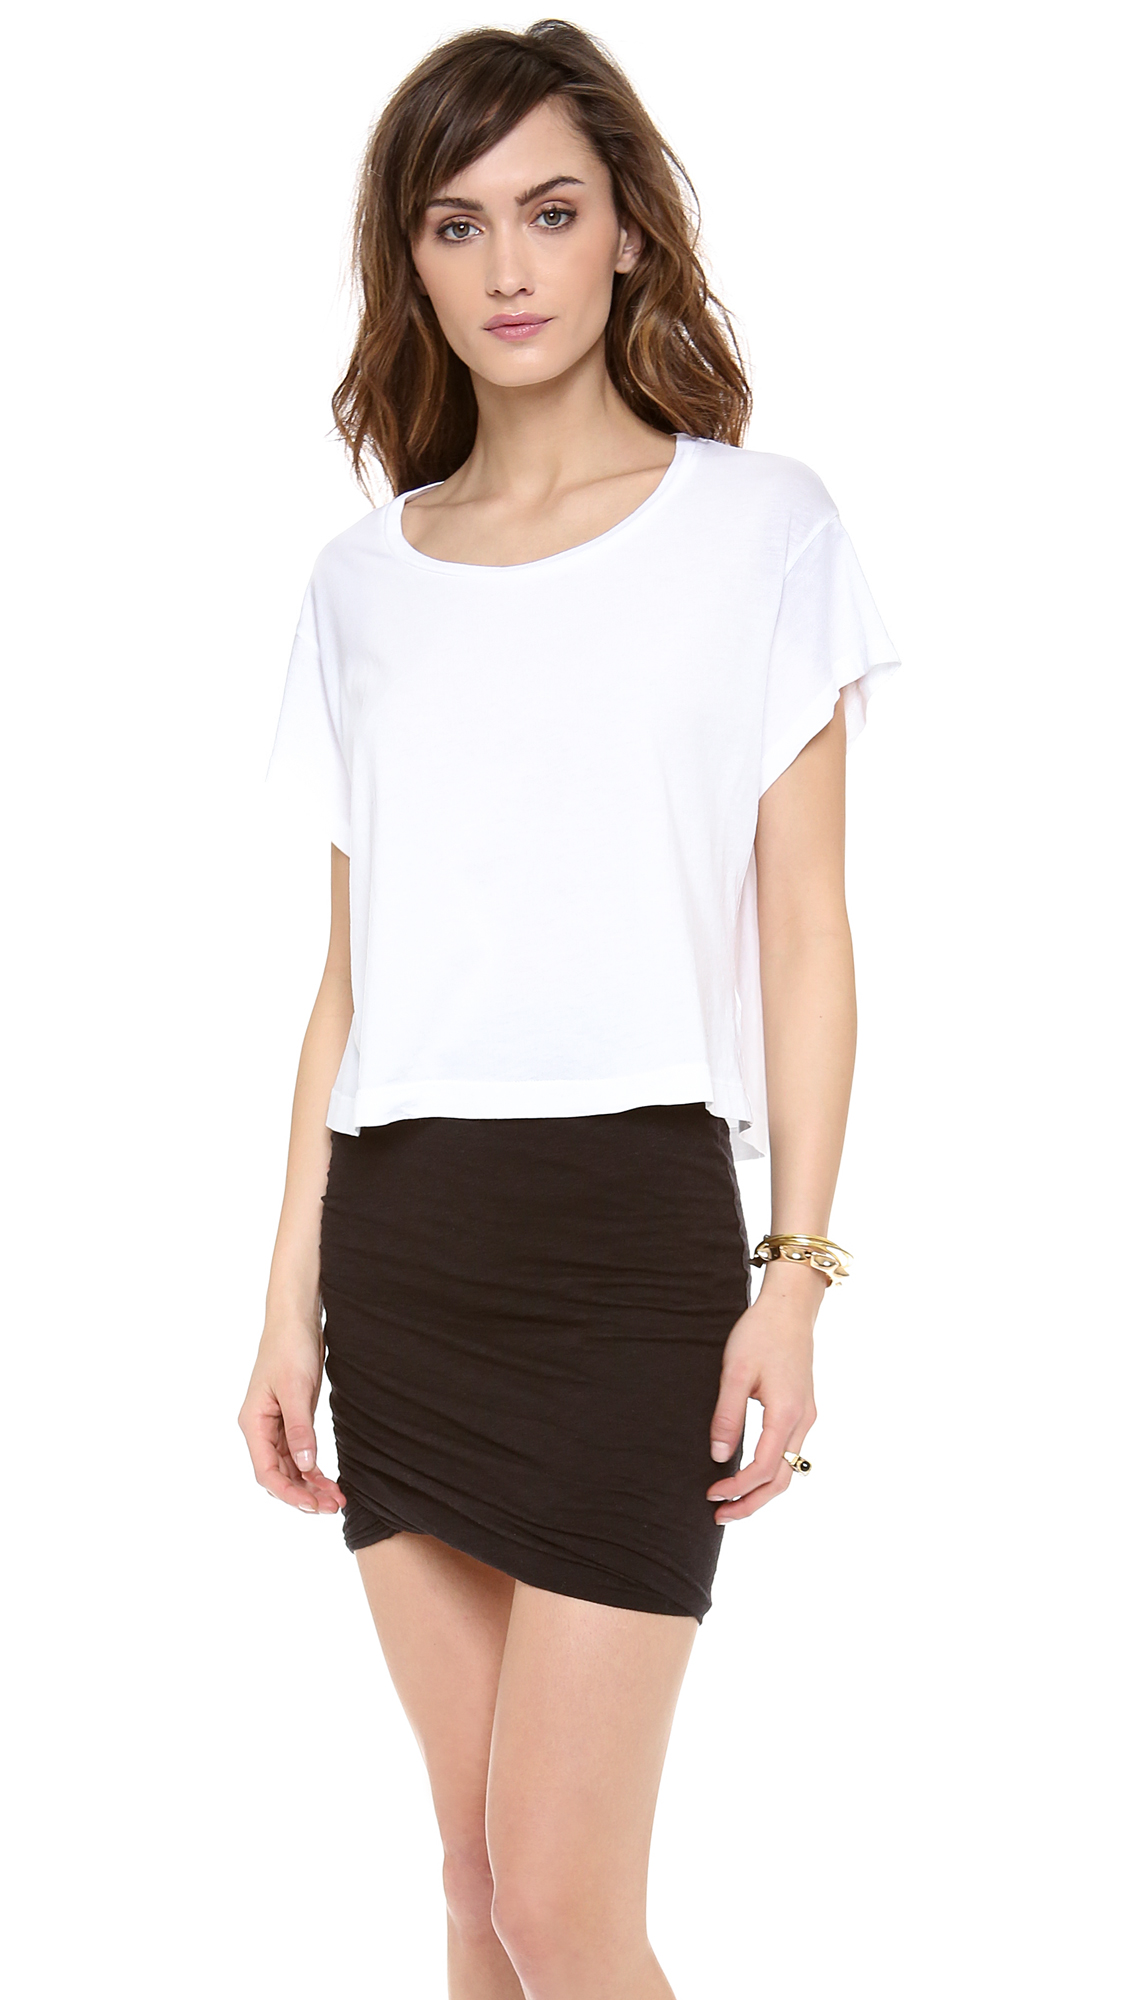 The Lulus Carina White Cropped Tee is so versatile! You can dress her down with some distressed jeans and a killer platform sneaker, or you can class it up a bit by wearing her with a trouser pant and a statement making necklace!/5(13).